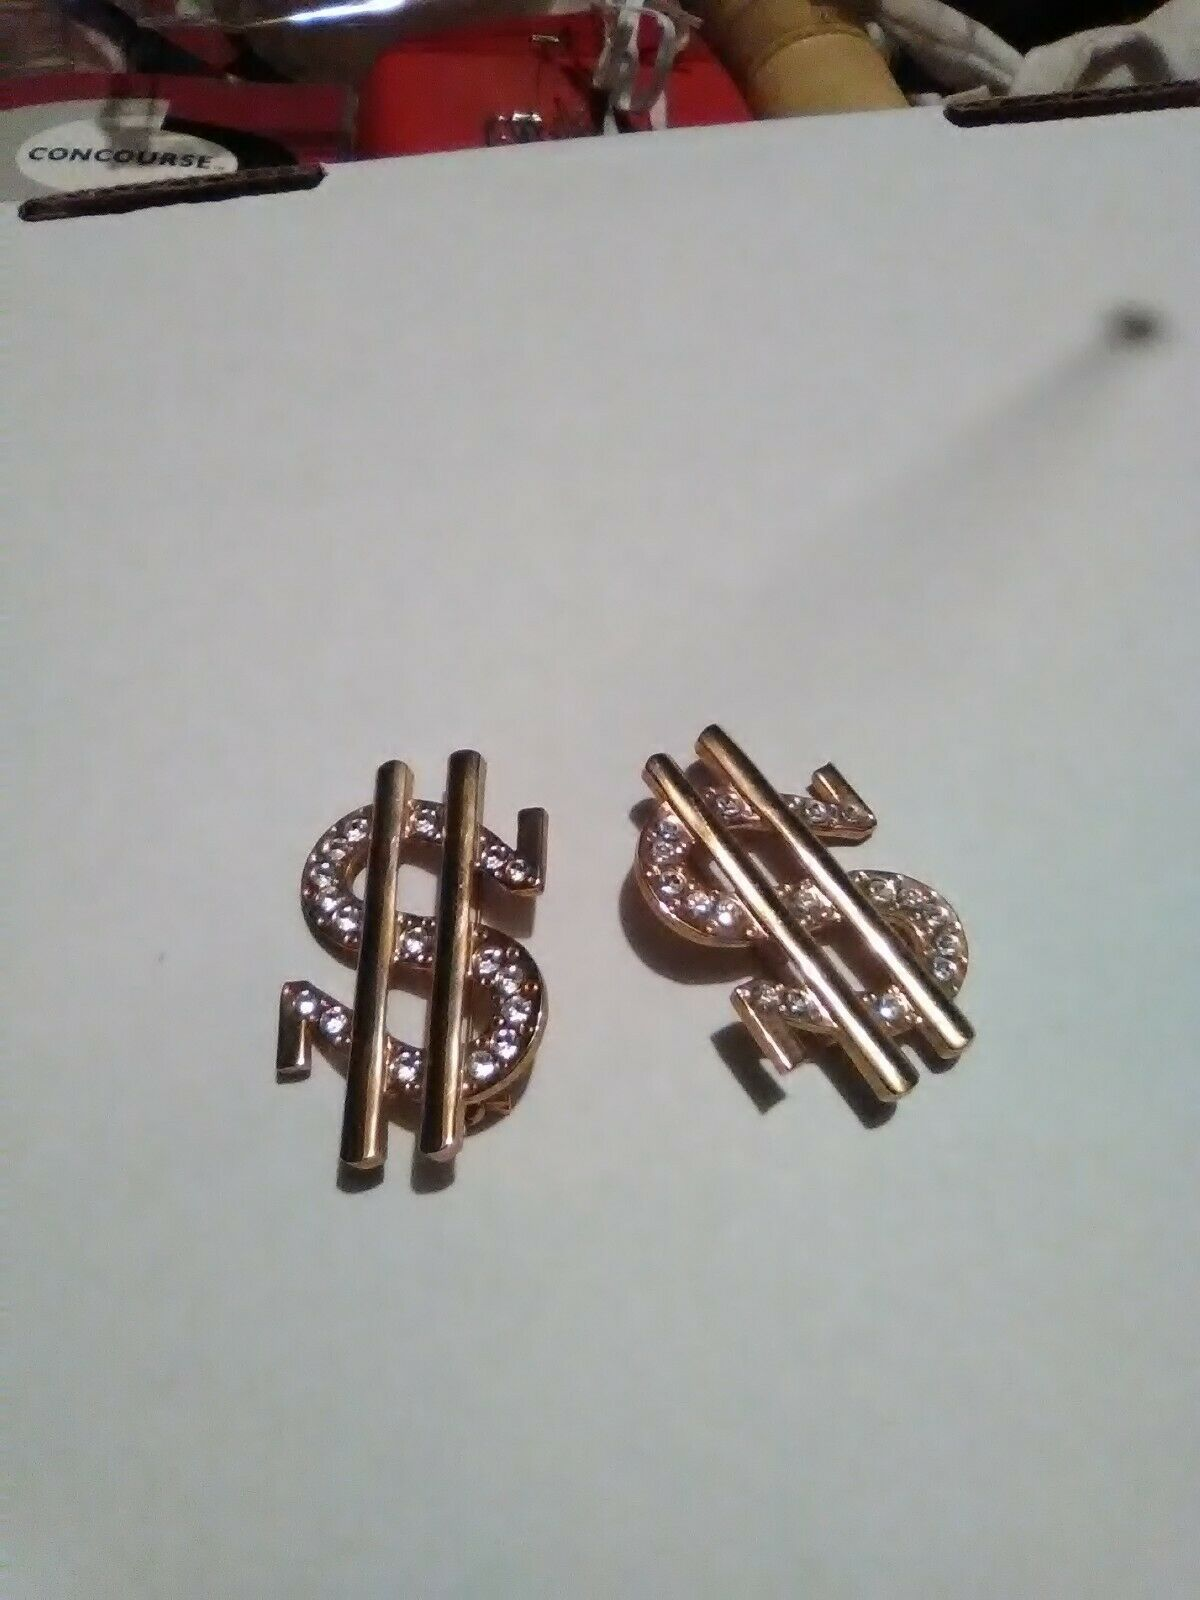 Primary image for VINTAGE GOLDEN PIN BROOCH PAIR (2 PINS) RHINESTONE ACCENTED $ DOLLAR SIGN